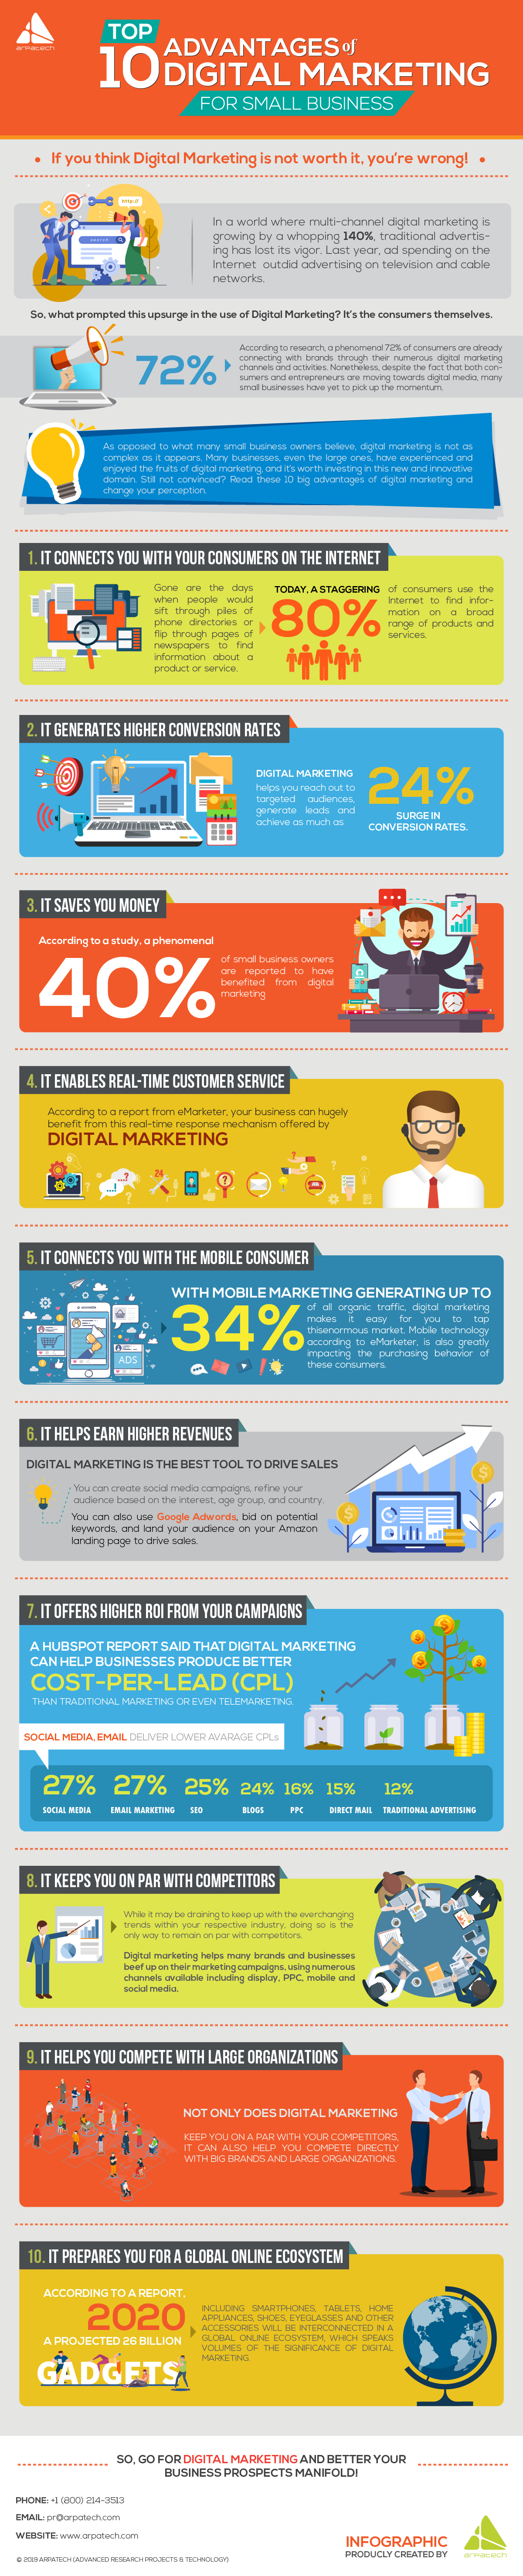 Infographic-Advantages-of-Digital-Marketing